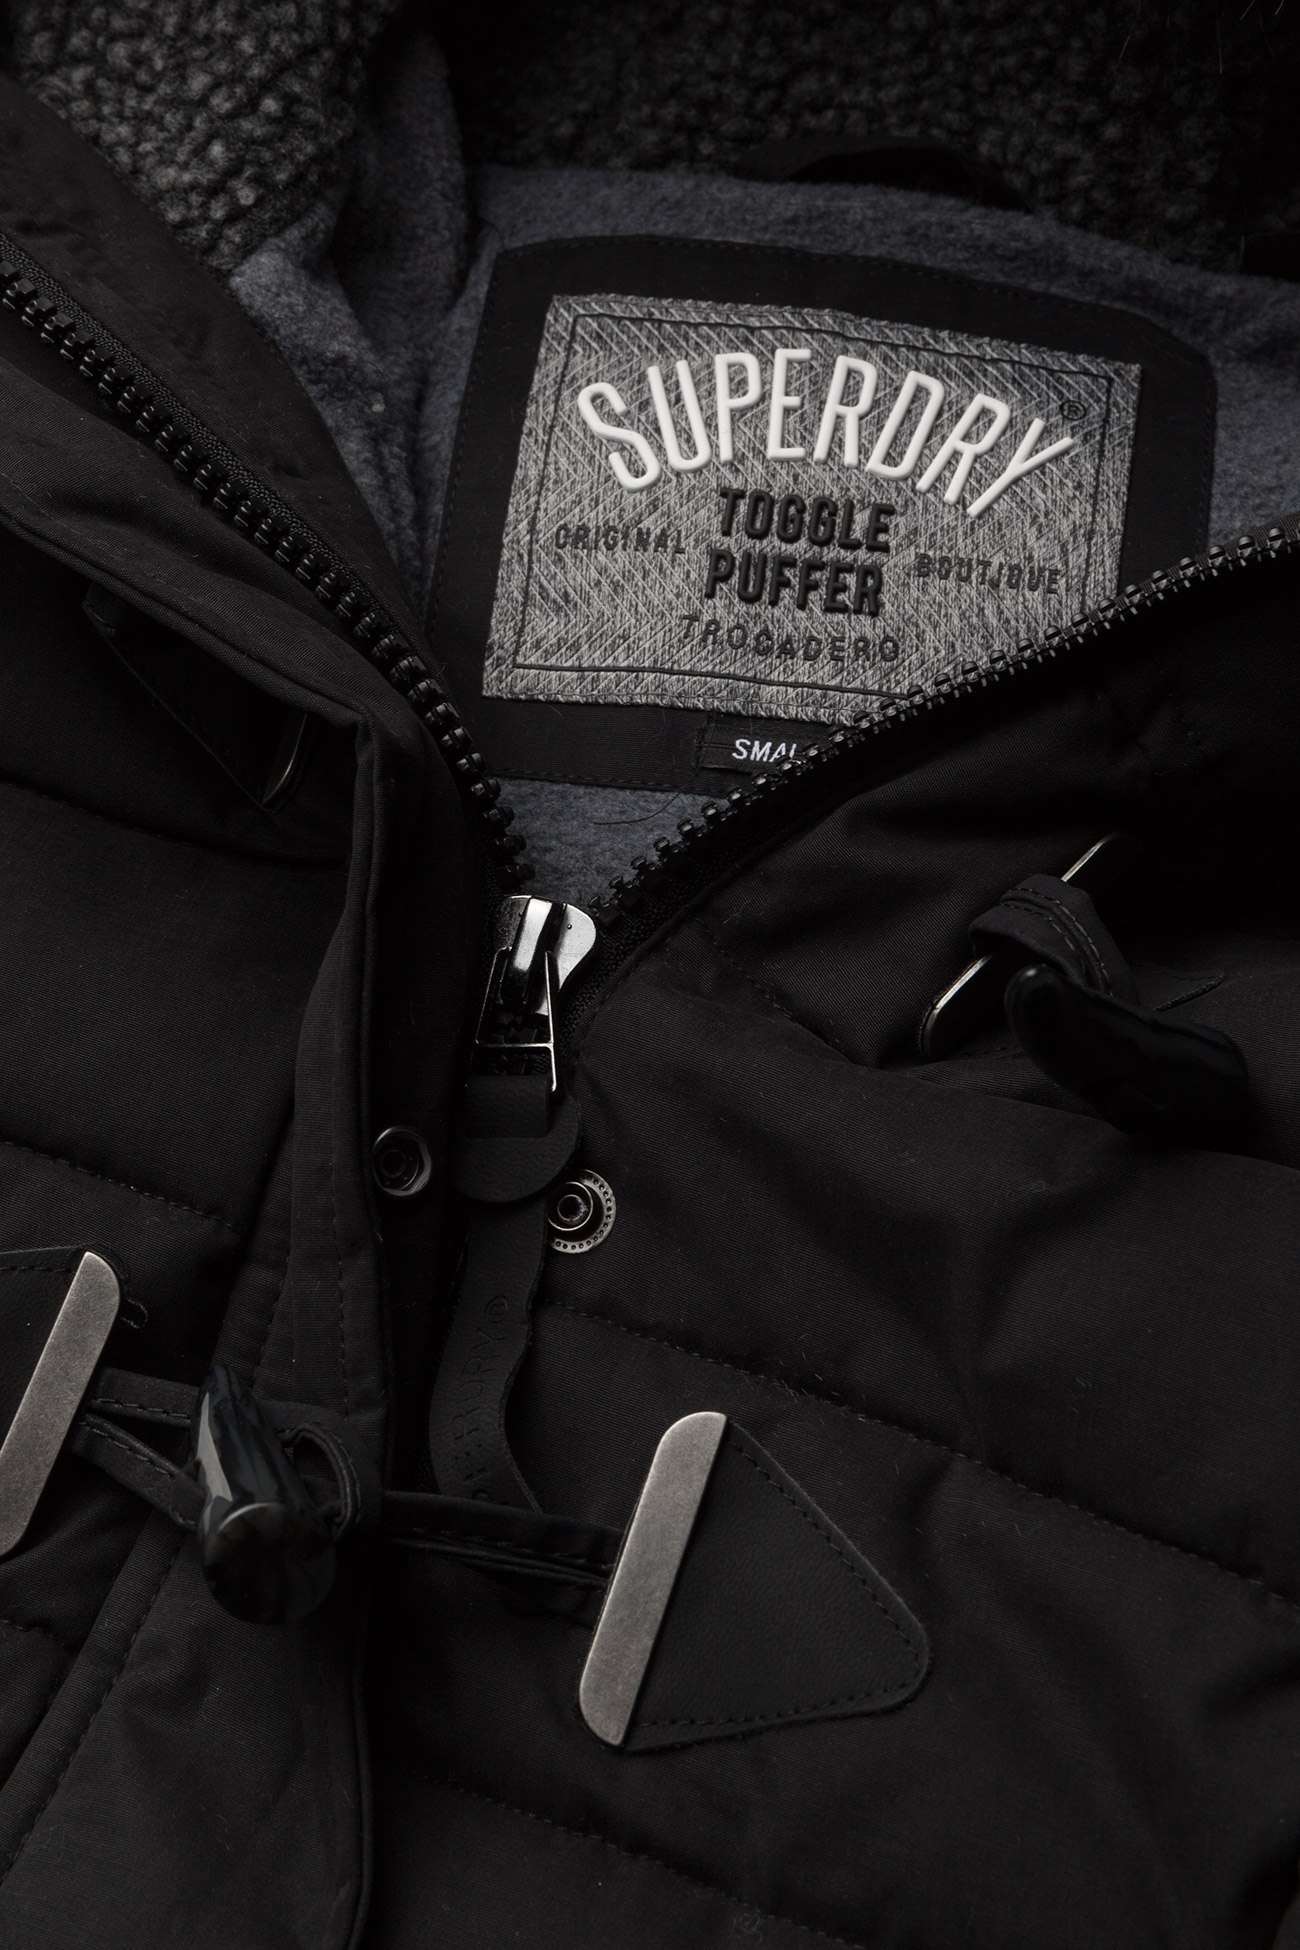 Superdry Mf Tall Toggle Puffle Jacket - Jackor & Kappor Black